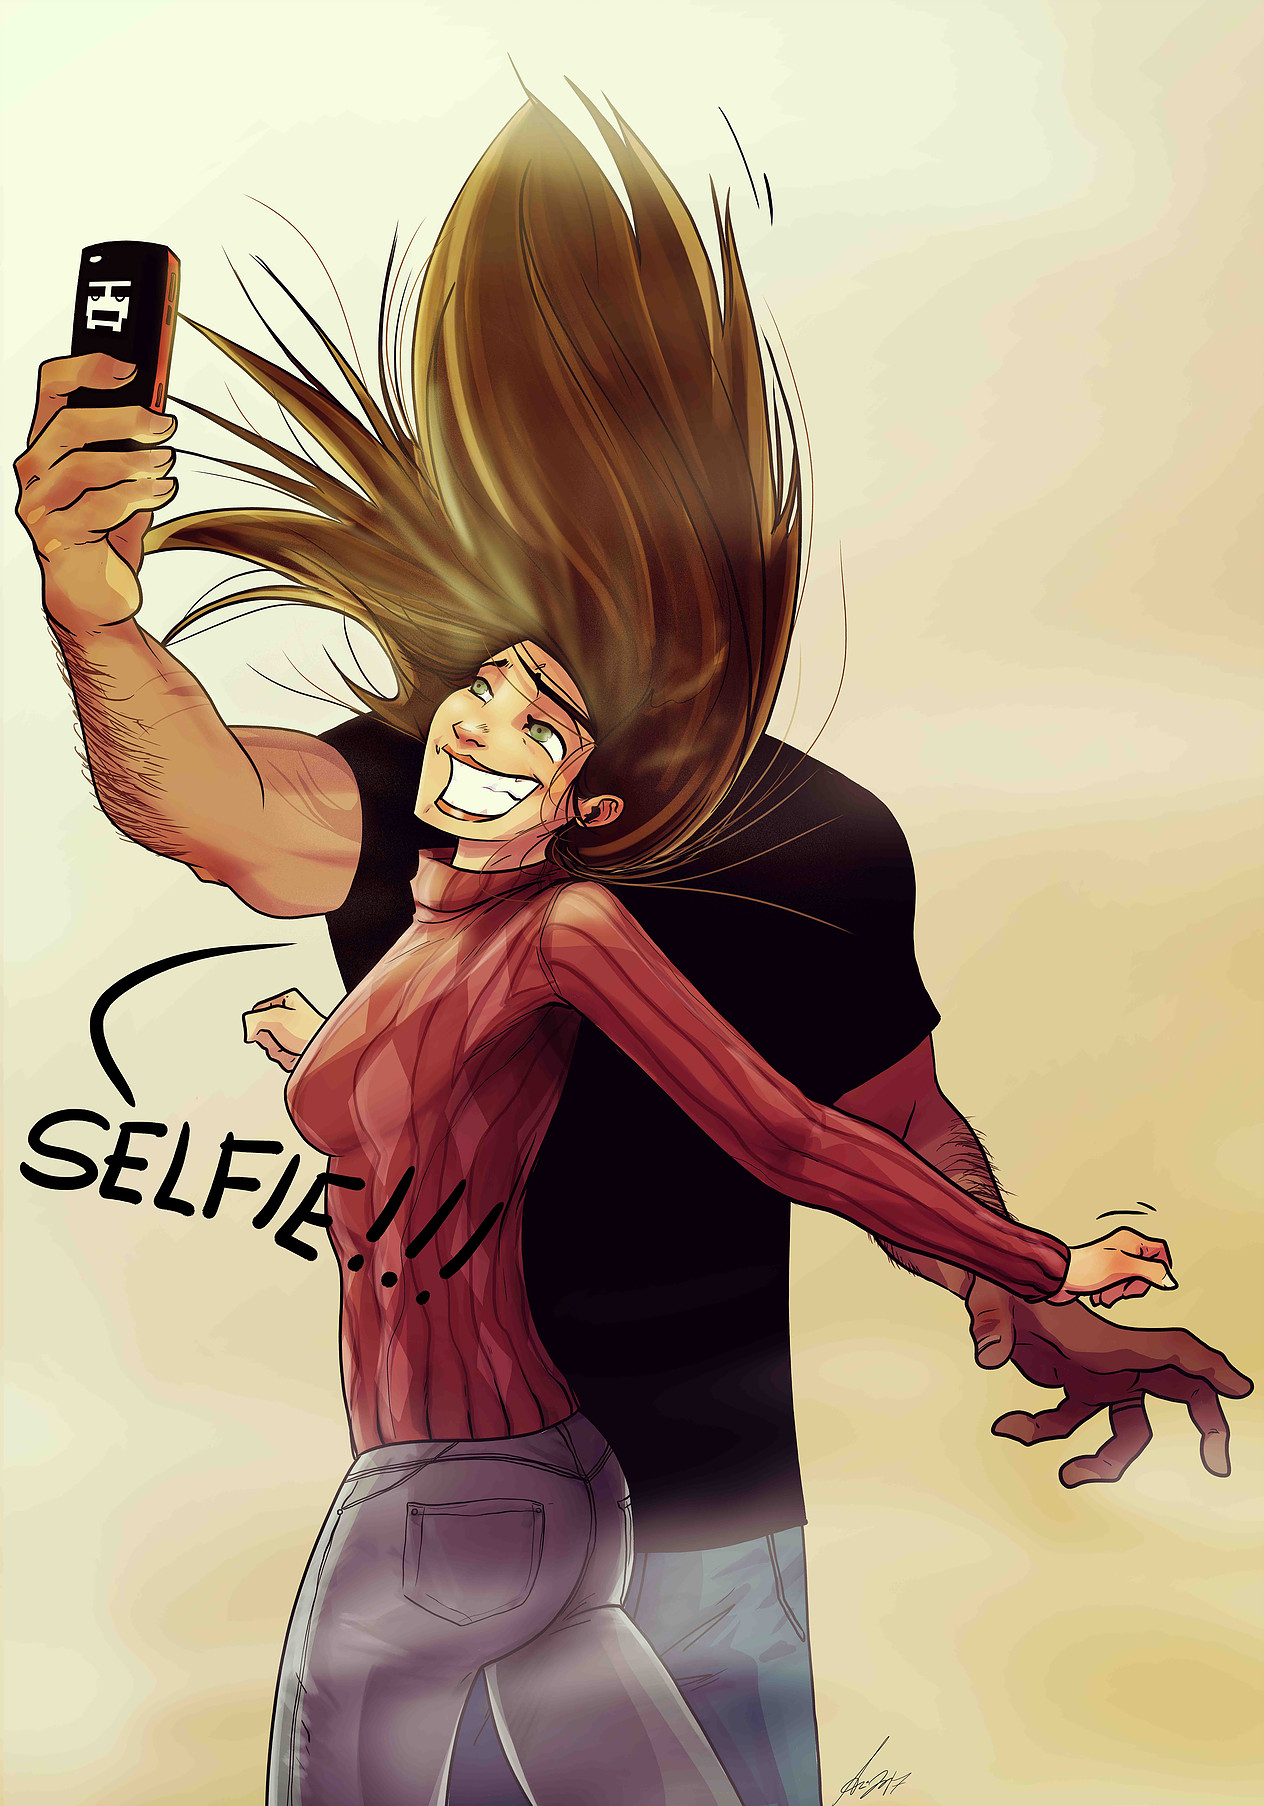 Lets take a selfie